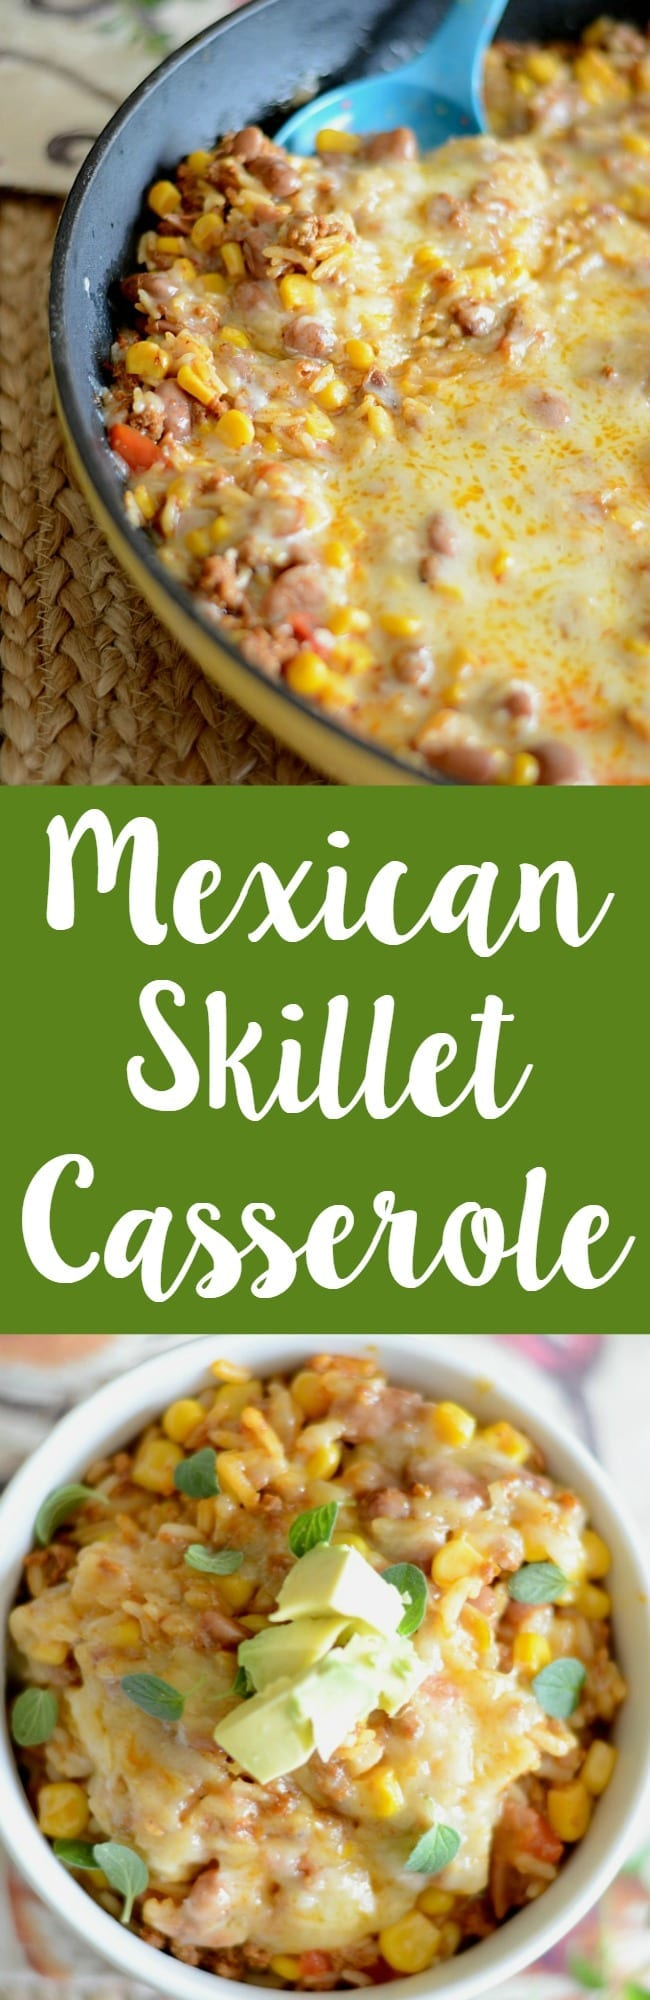 Mexican skillet casserole - made all in one pan and in under 30 minutes! Dinner time win!